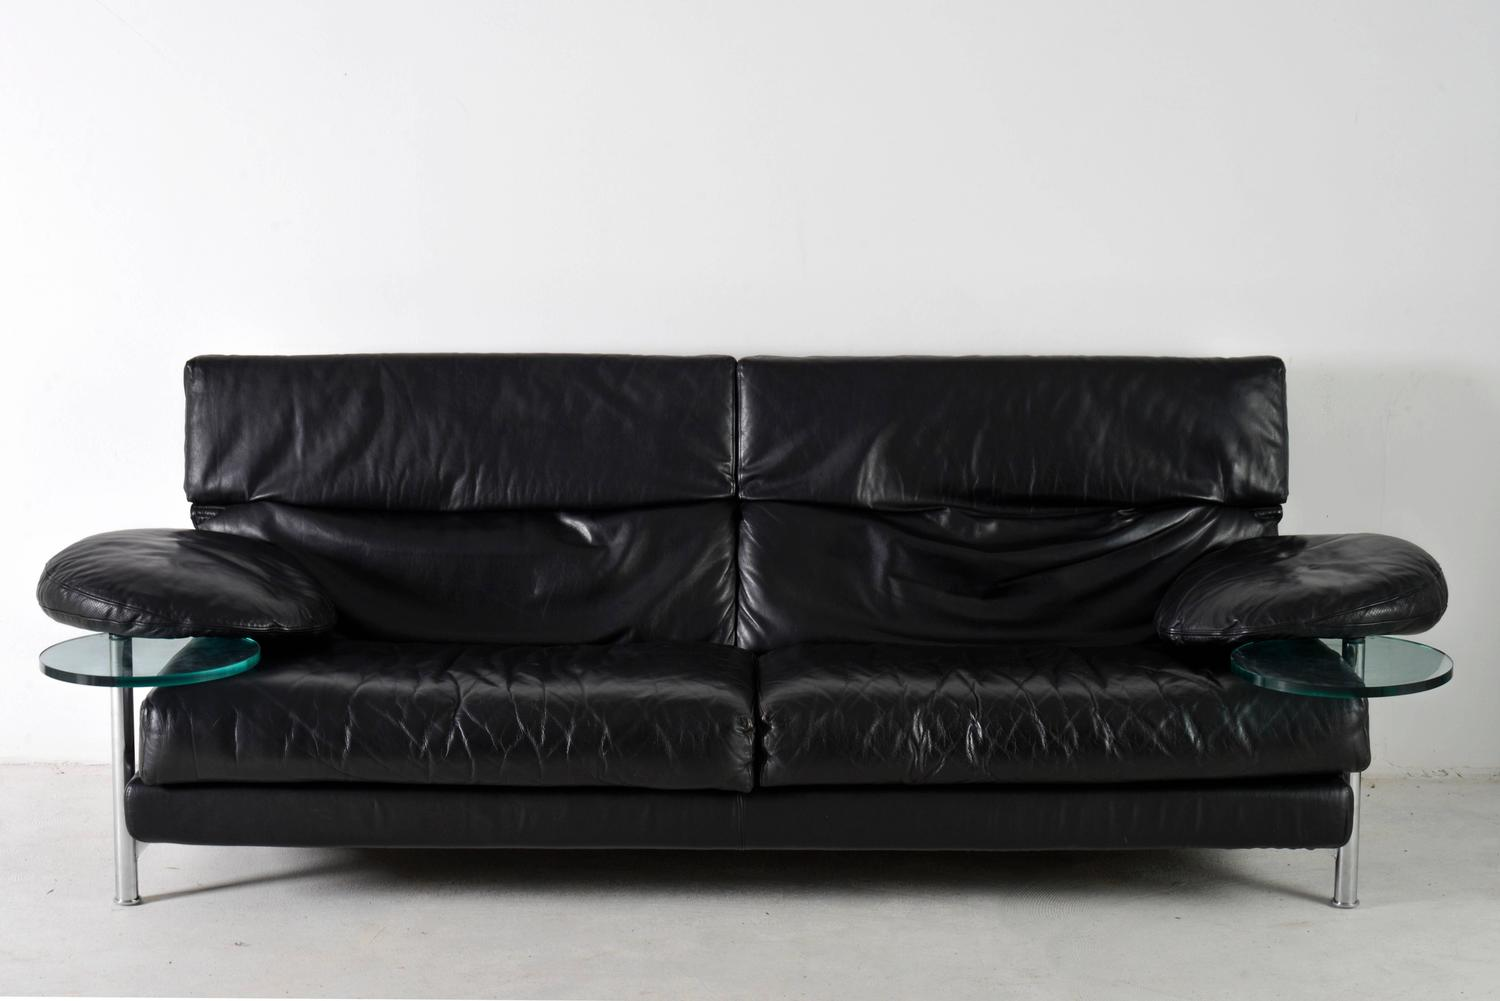 Arca sofa by paolo piva for b b italia at 1stdibs - Sofa zitplaatsen zwarte ...